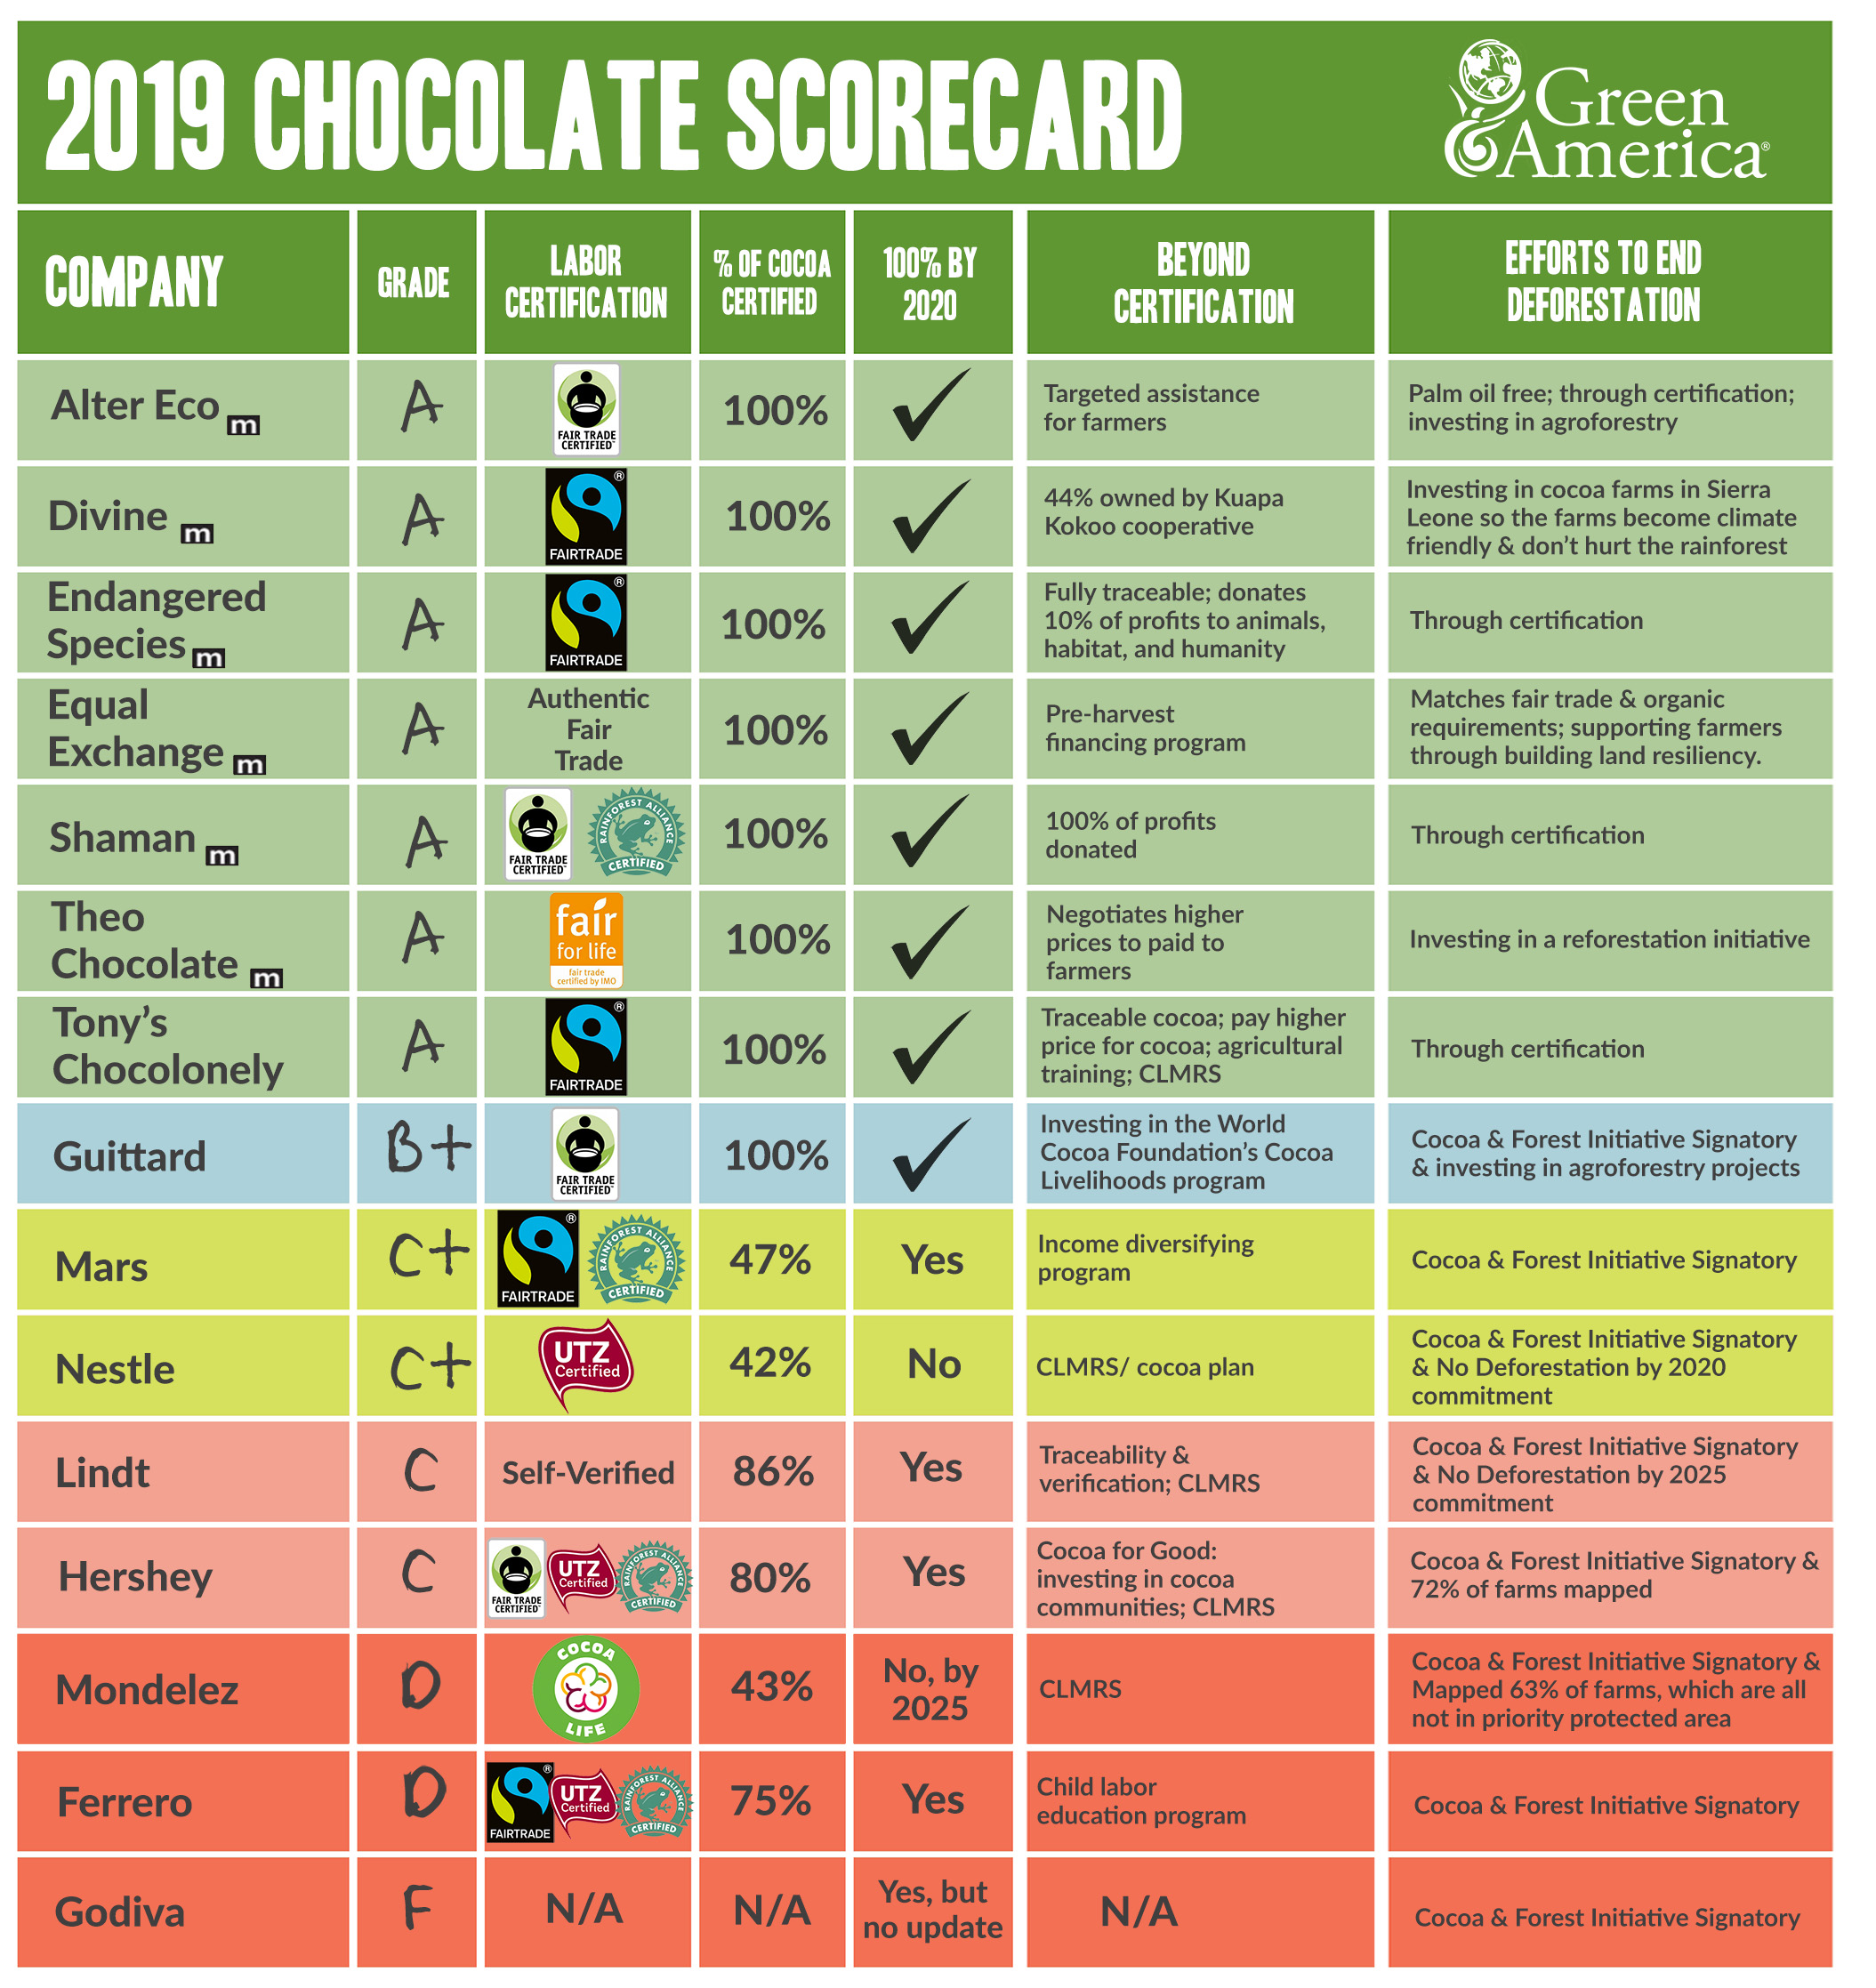 Green America's Chocolate Scorecard